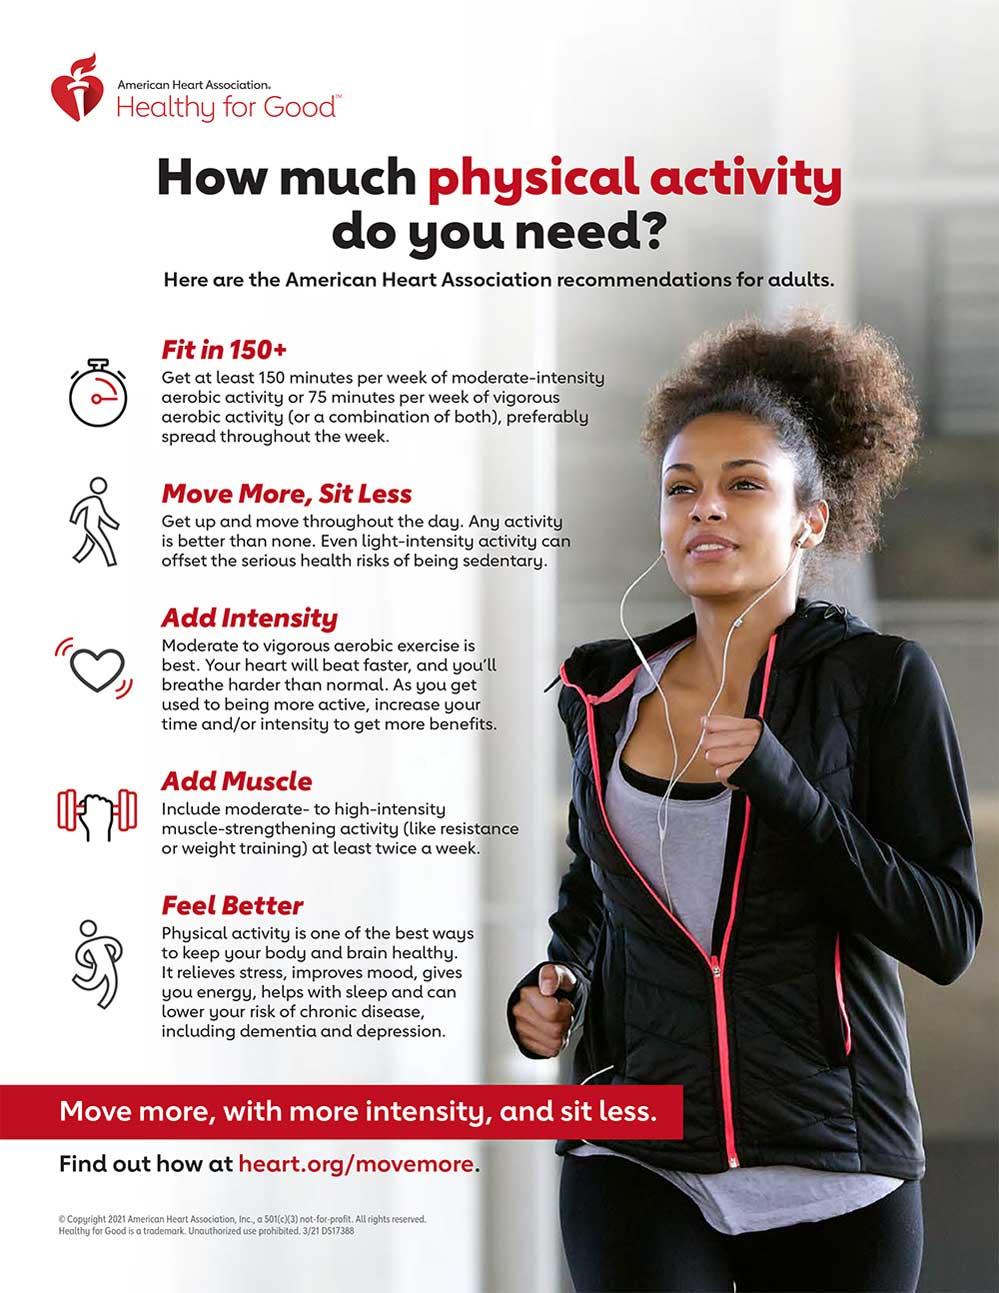 AHA Physical Activity Recommendations Infographic Image